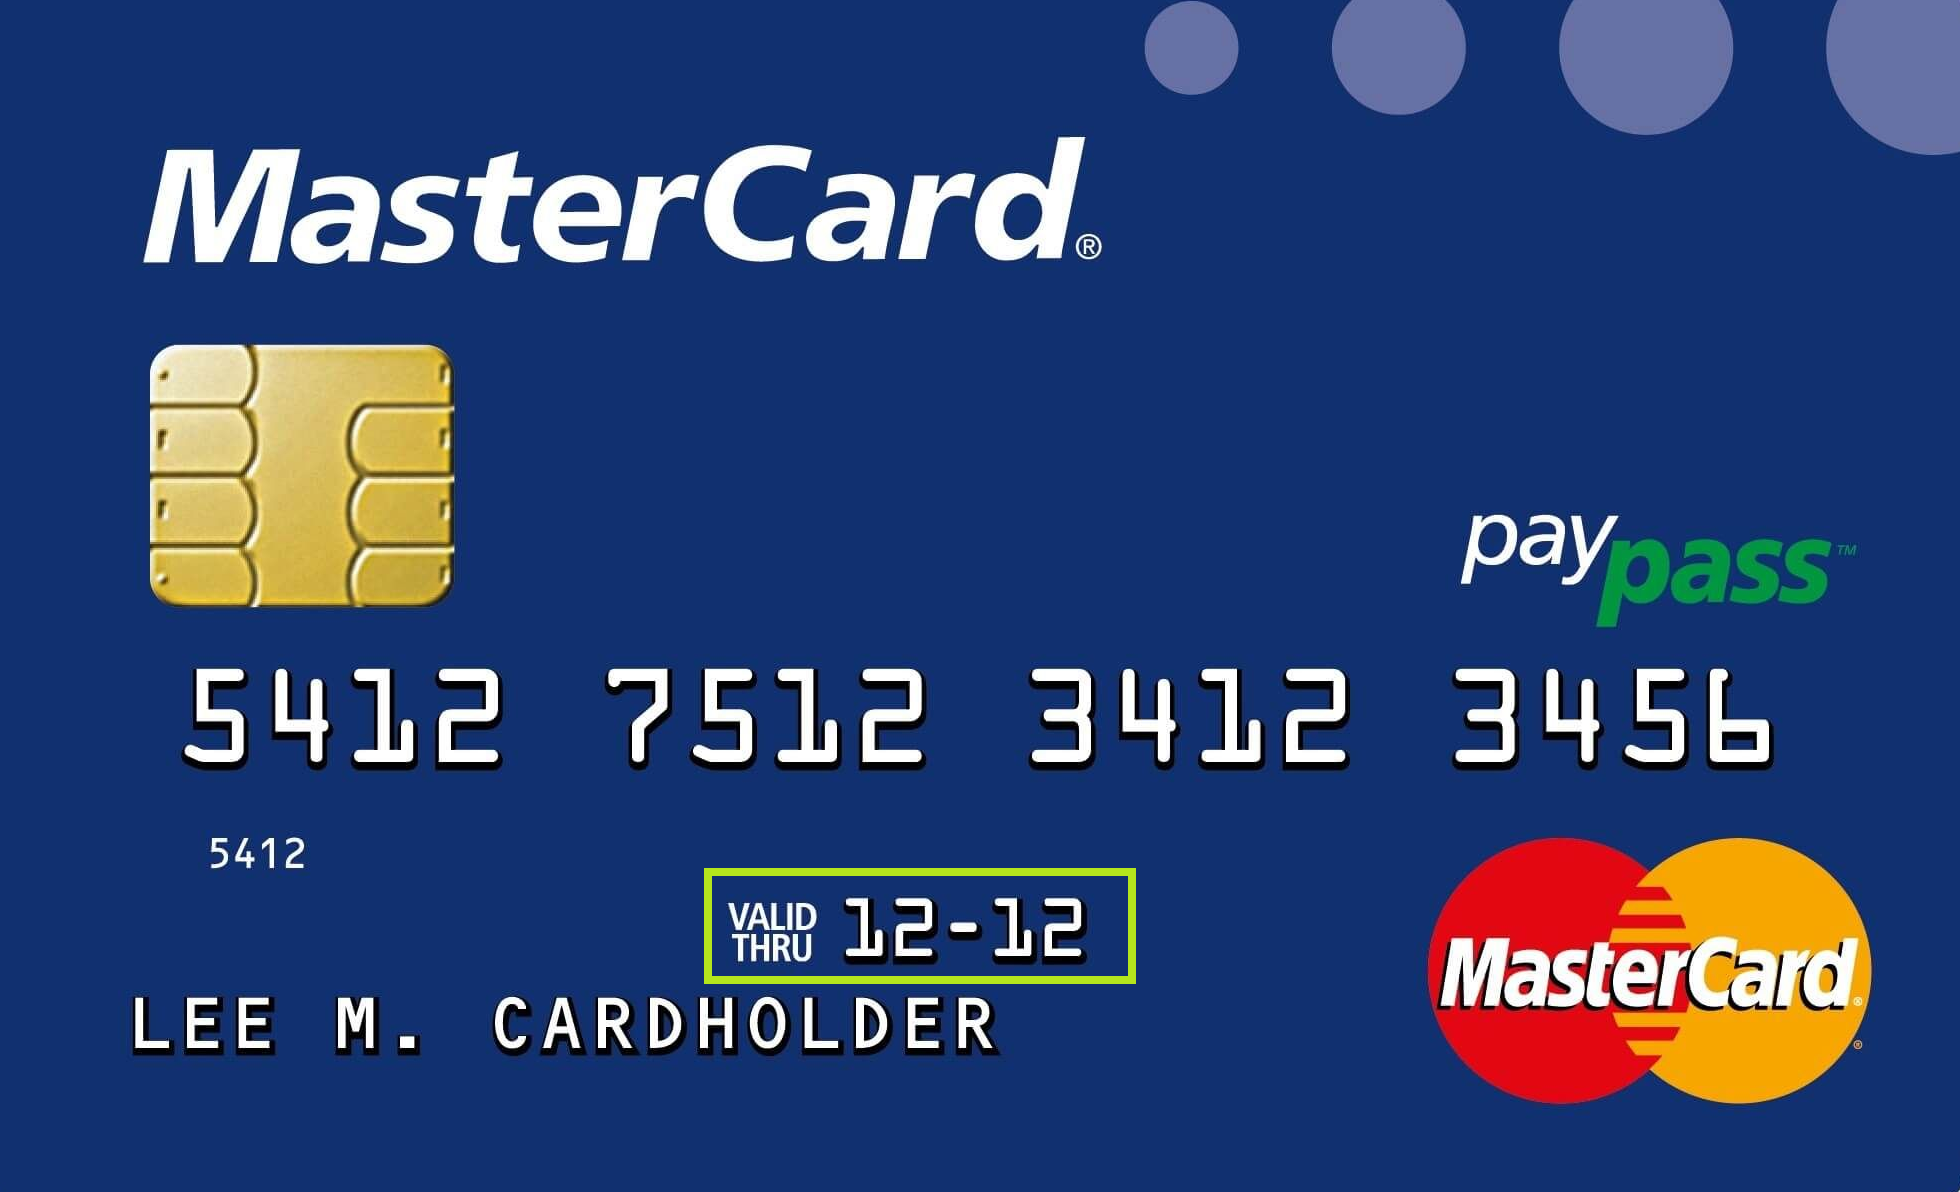 Expiration Date in Credit Card